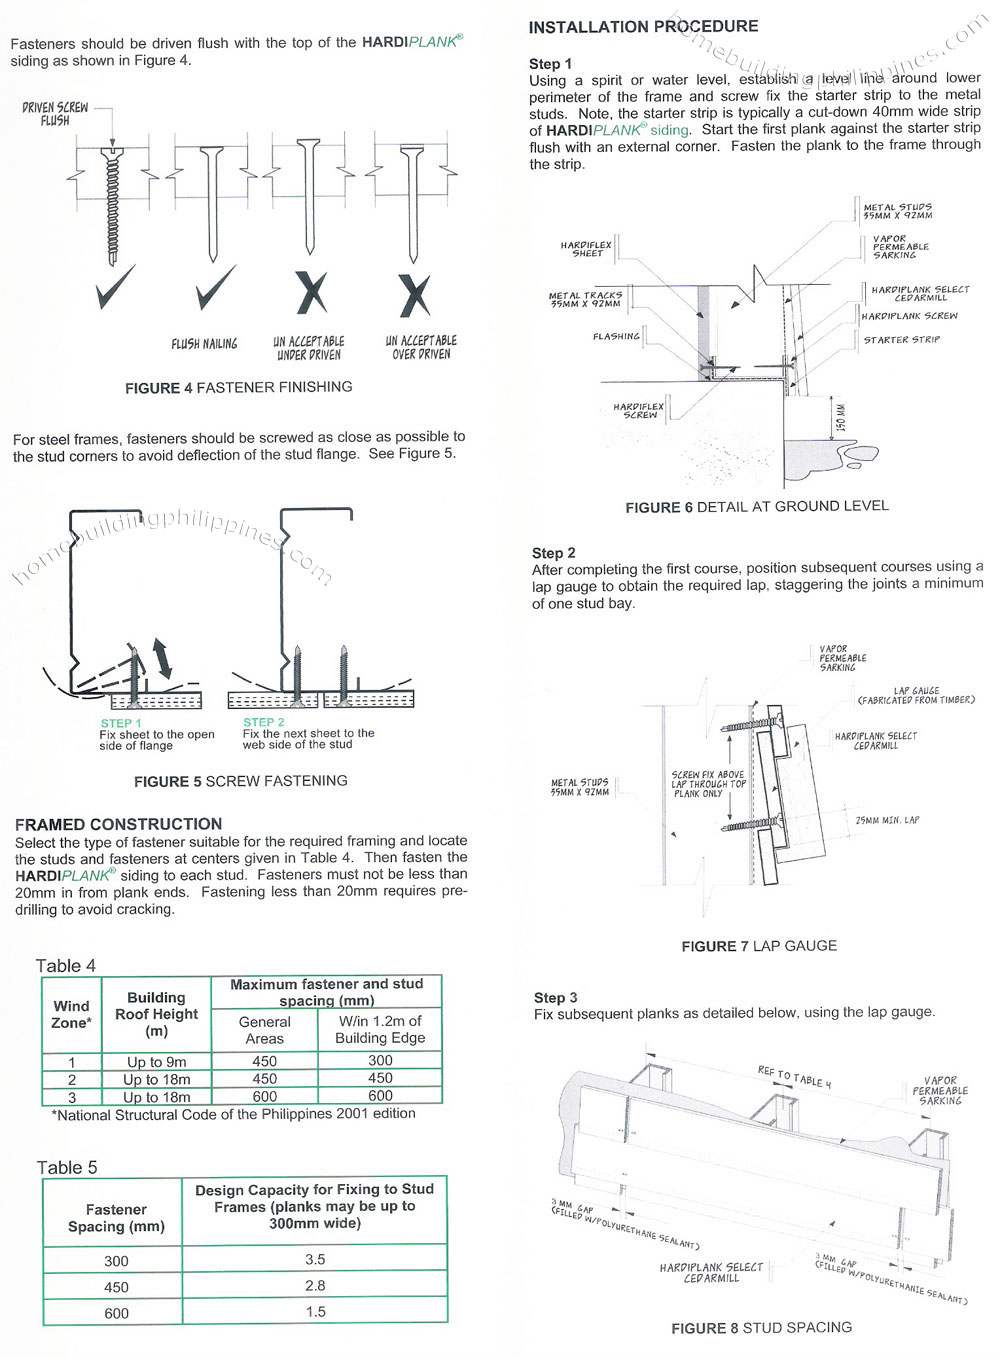 Hardieplank durable siding board installation manual